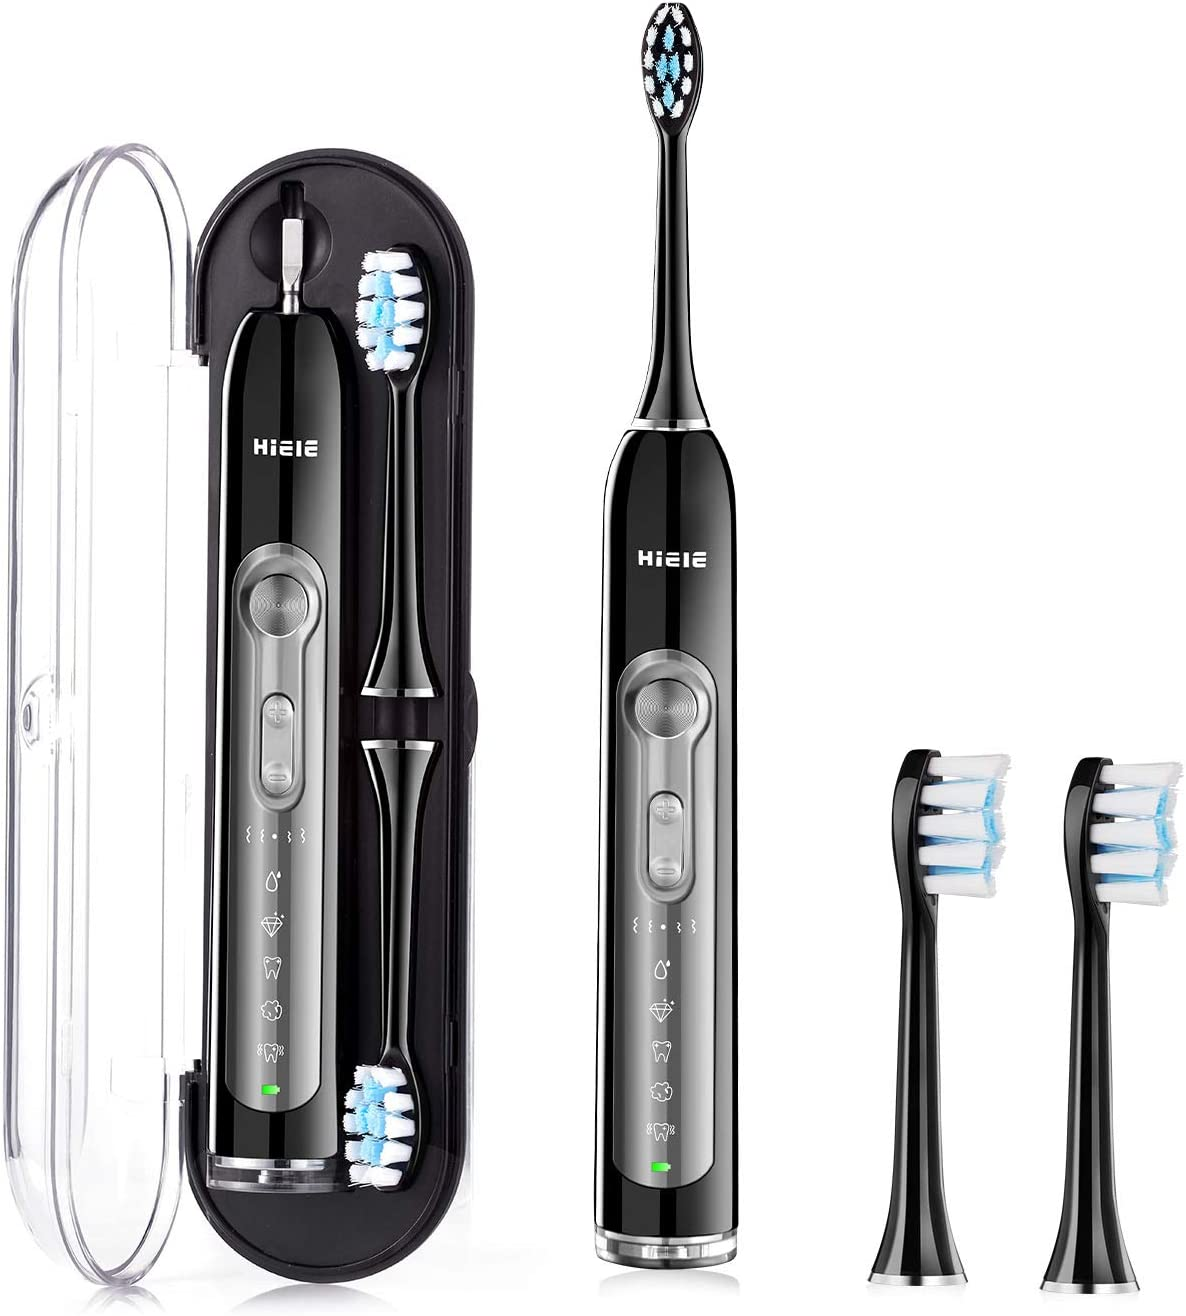 HIEIE Sonic Electric Toothbrush, USB Rechargeable Toothbrush Travel with 2 Replacement Heads, 5 Brushing Modes with 2 Minutes Timer, IPX7 Waterproof Black